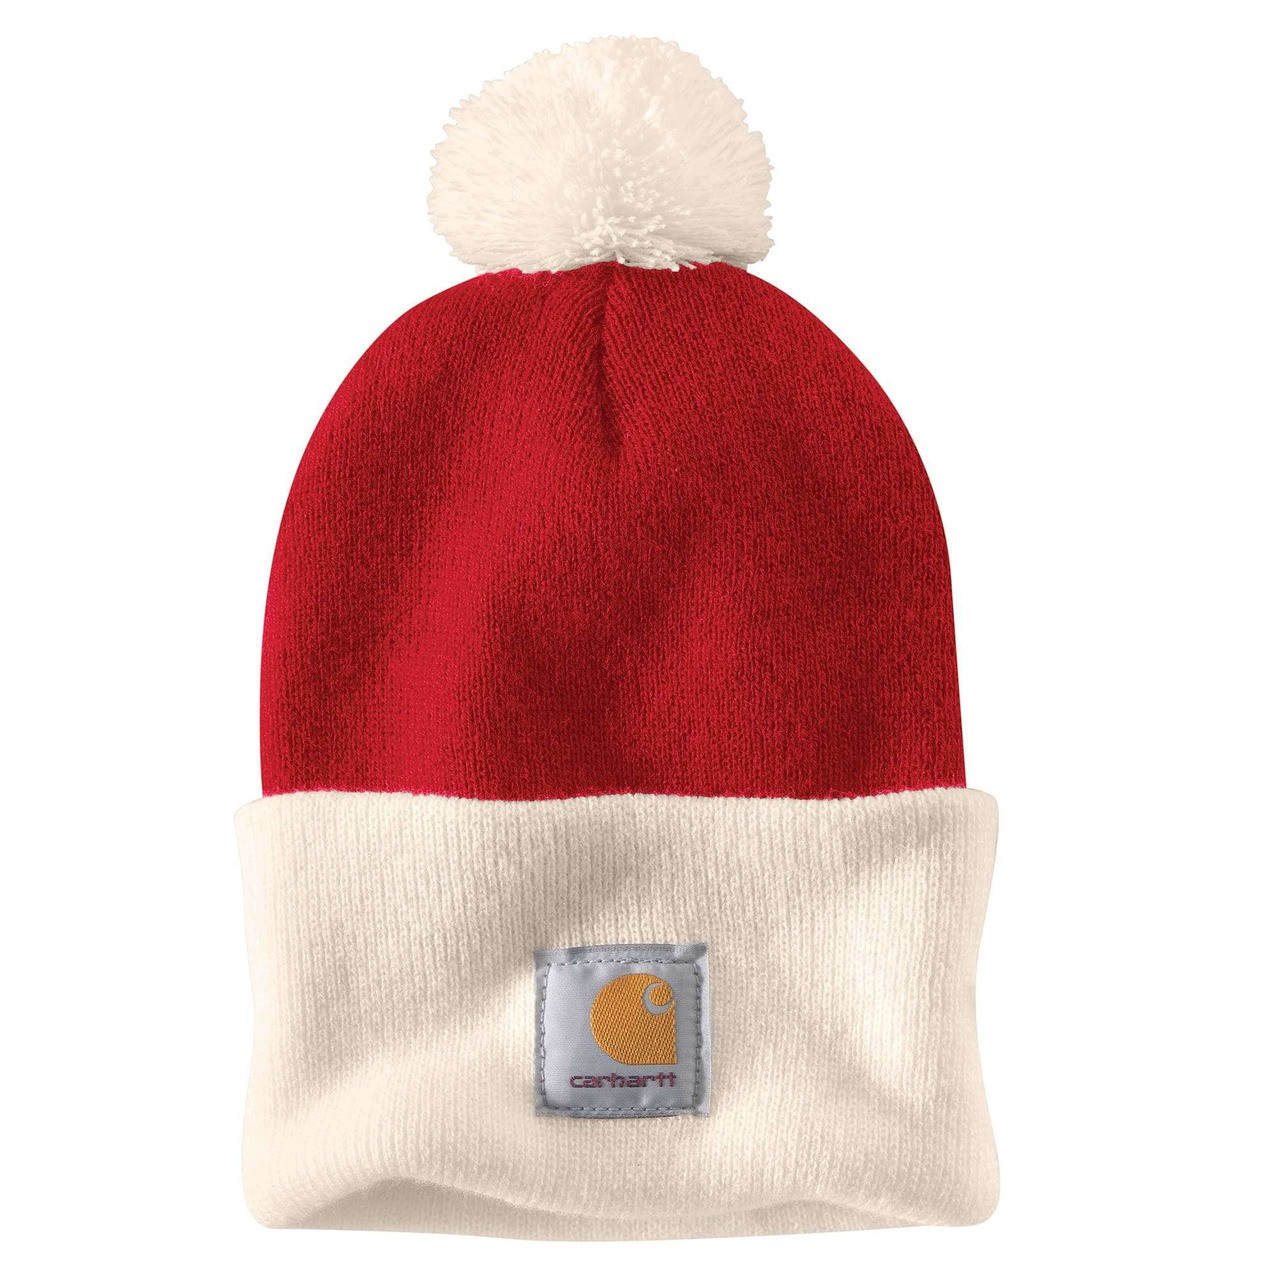 7d336c63b6add Carhartt Outlook Santa Hat Toque - Herbert s Boots and Western Wear